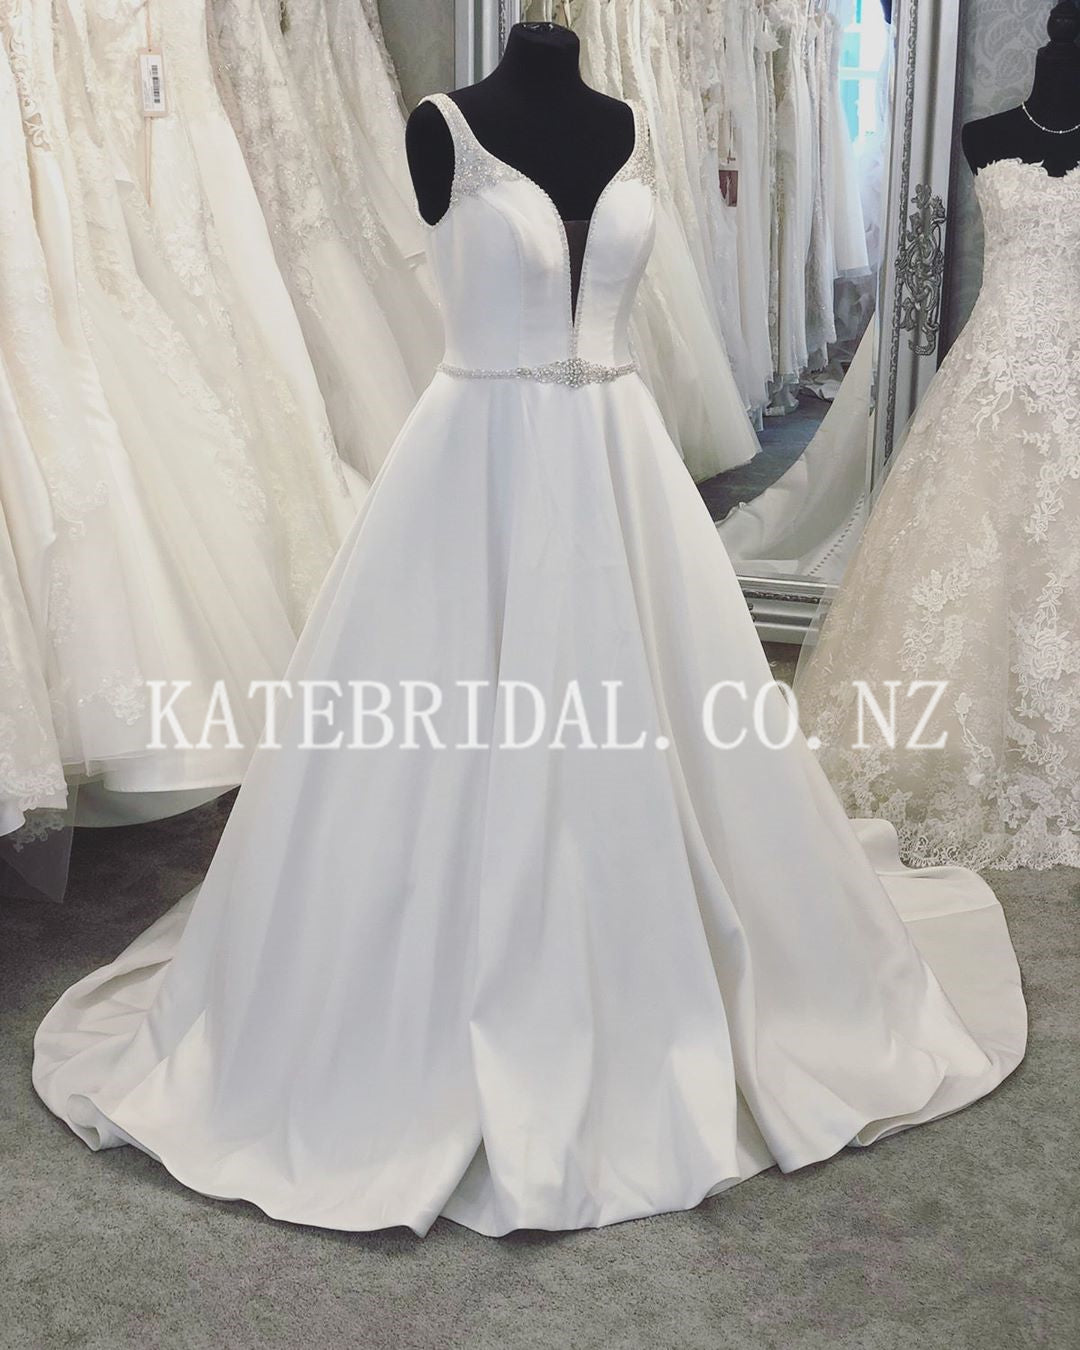 Beading Plunging Neck Sleeveless Backless Long Solid Satin Wedding Dress with Sweep Train